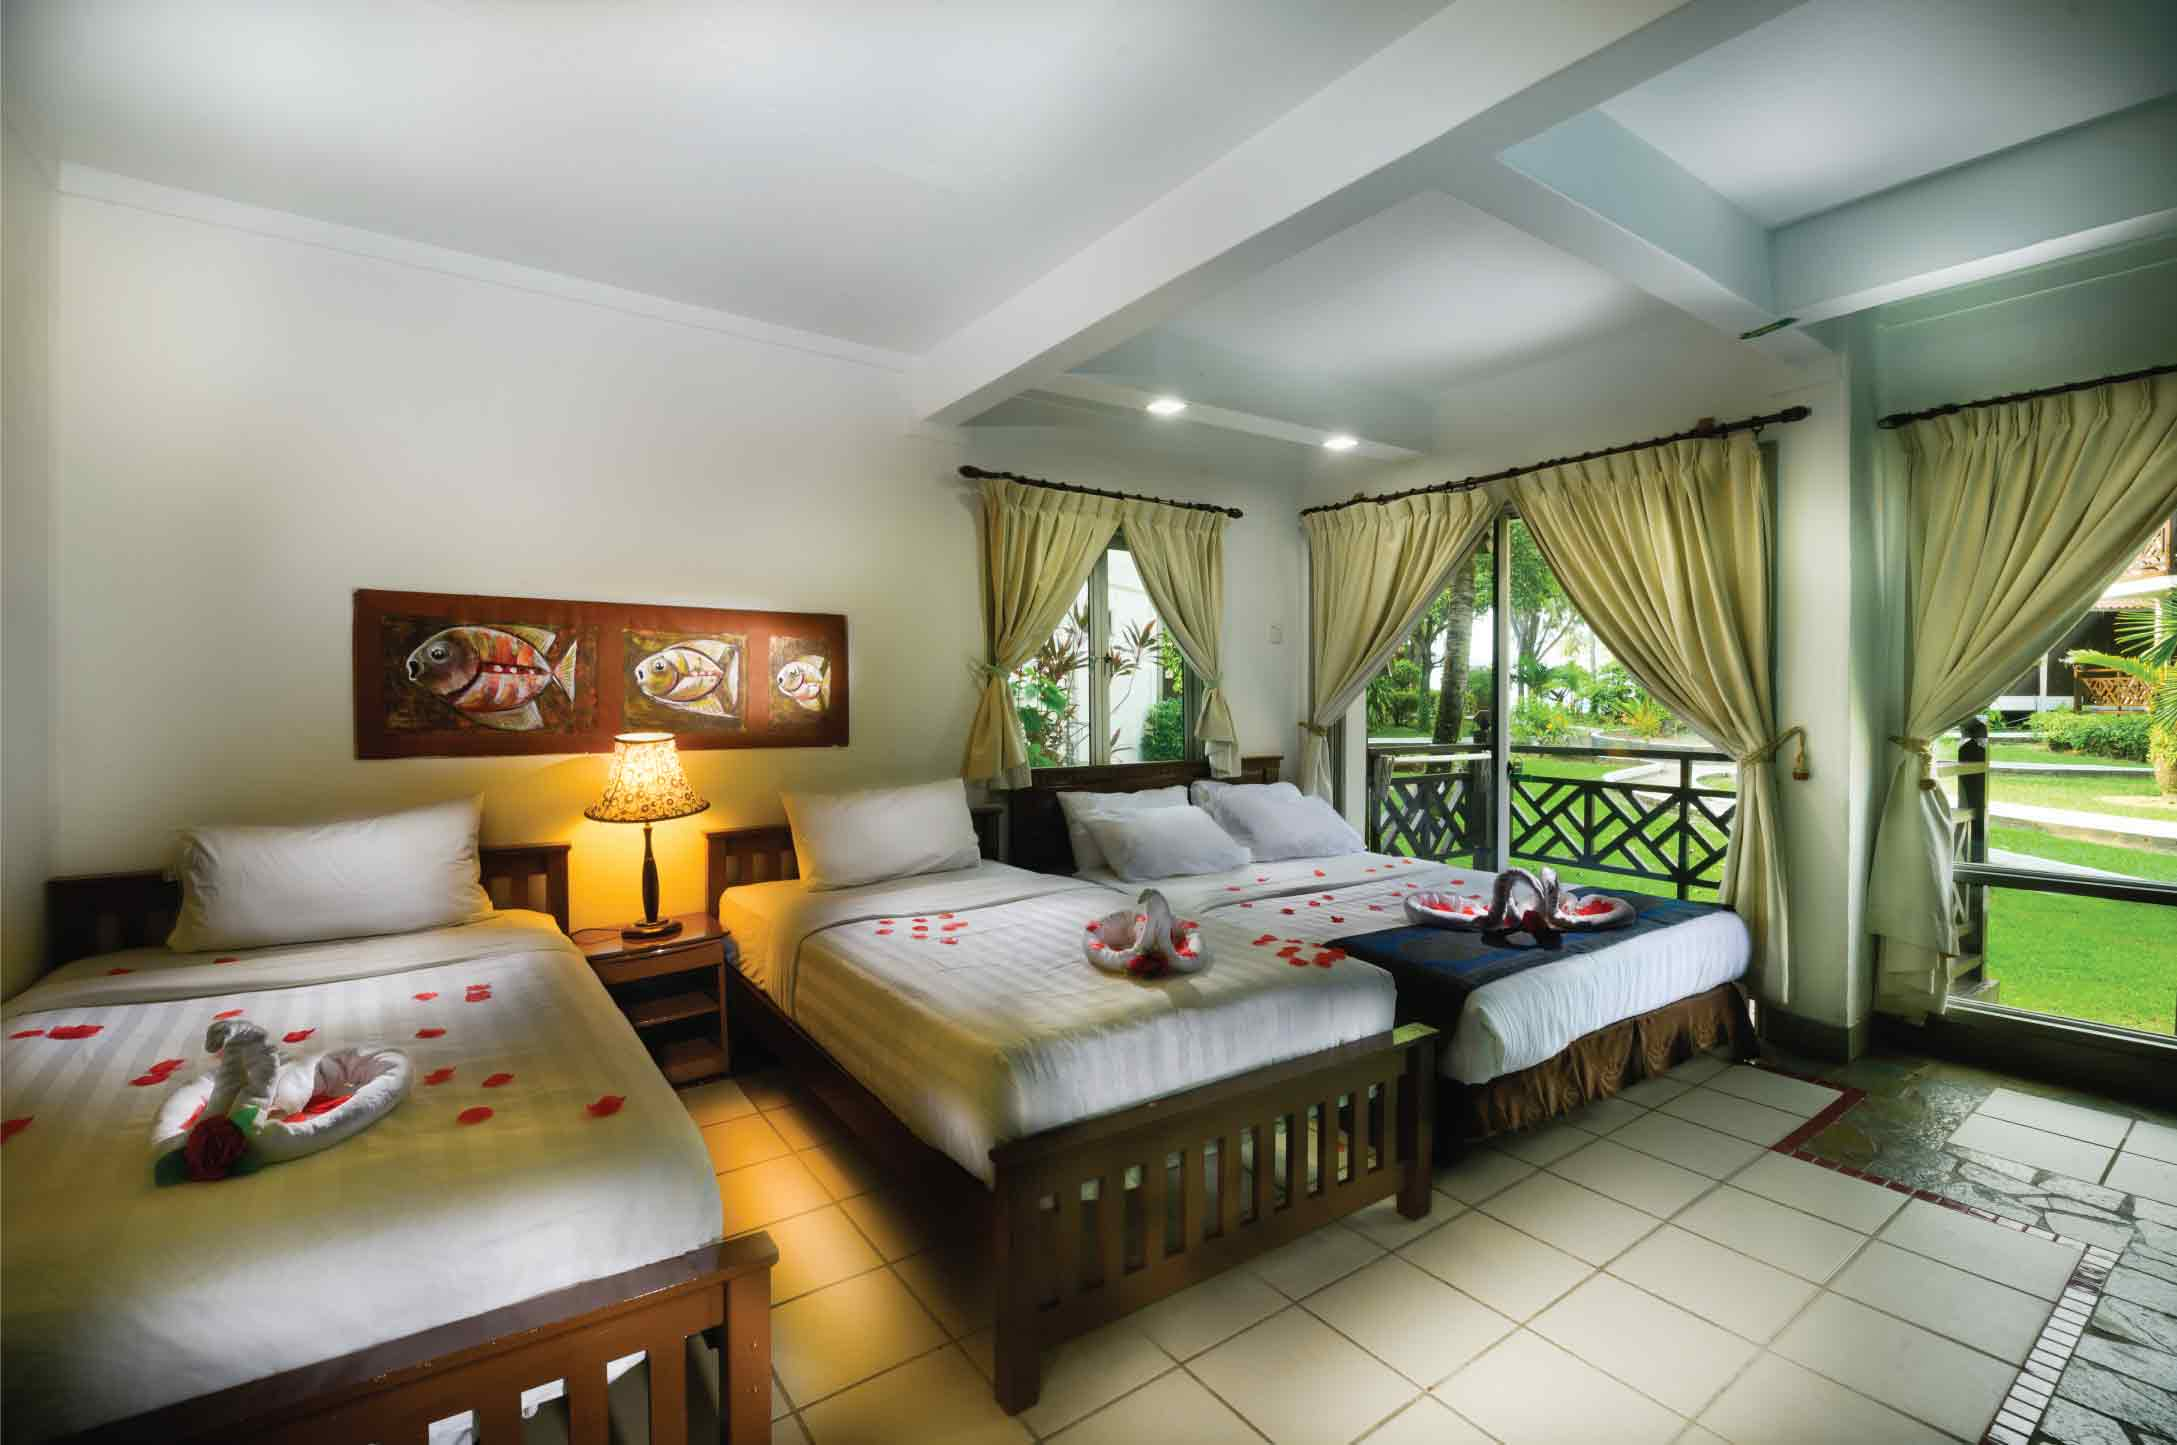 Bedroom With One Queen Sized Bed & Two Single Beds